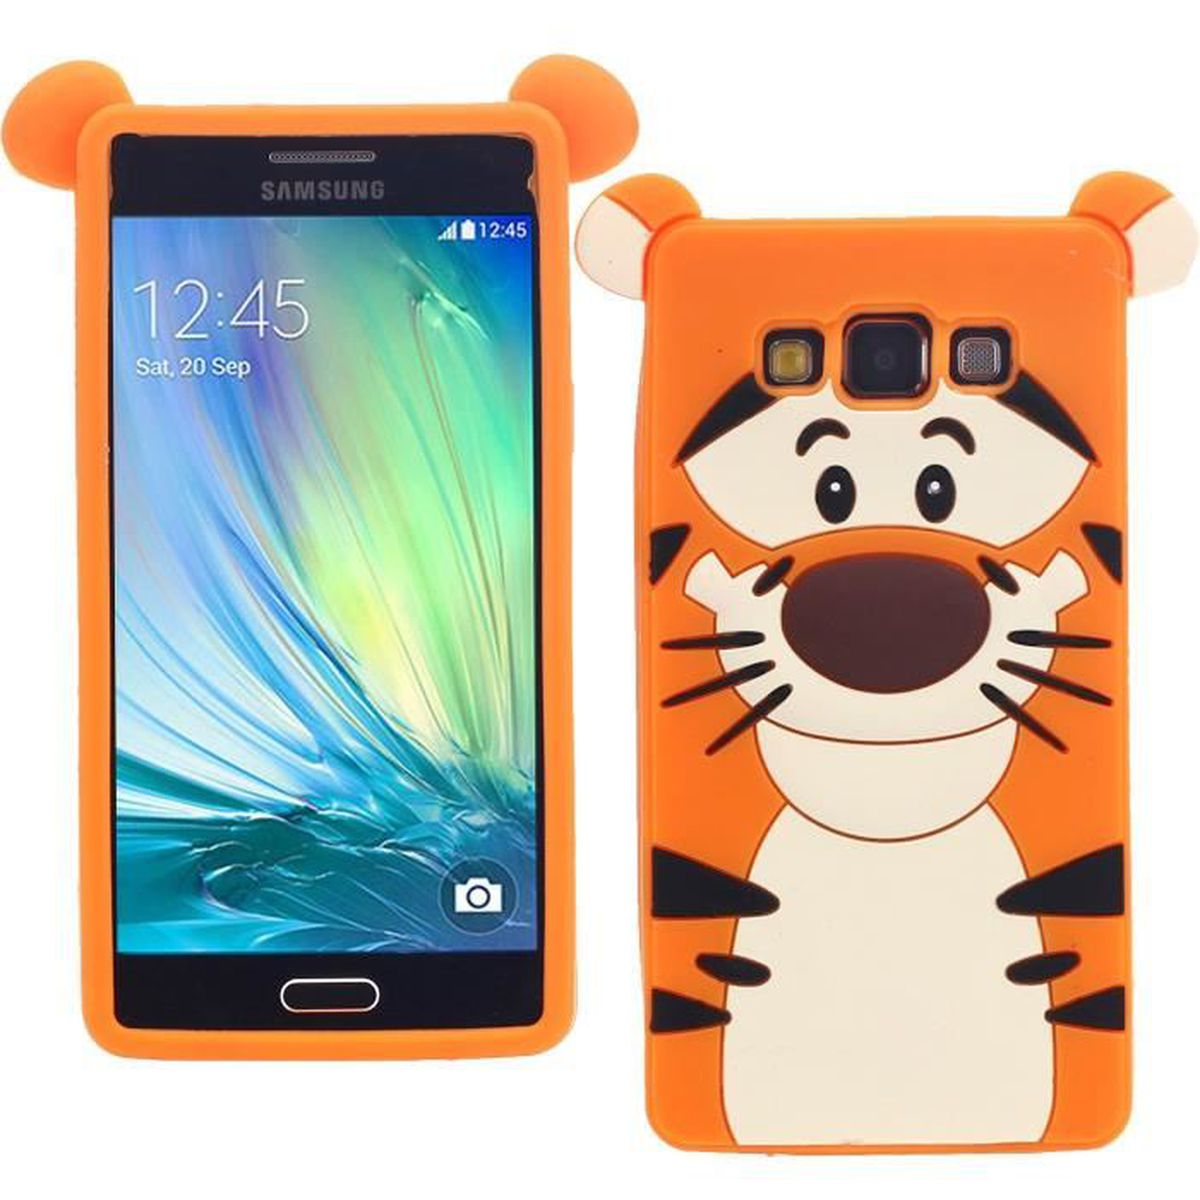 coque samsung galaxy j3 2016 winnie l'ourson